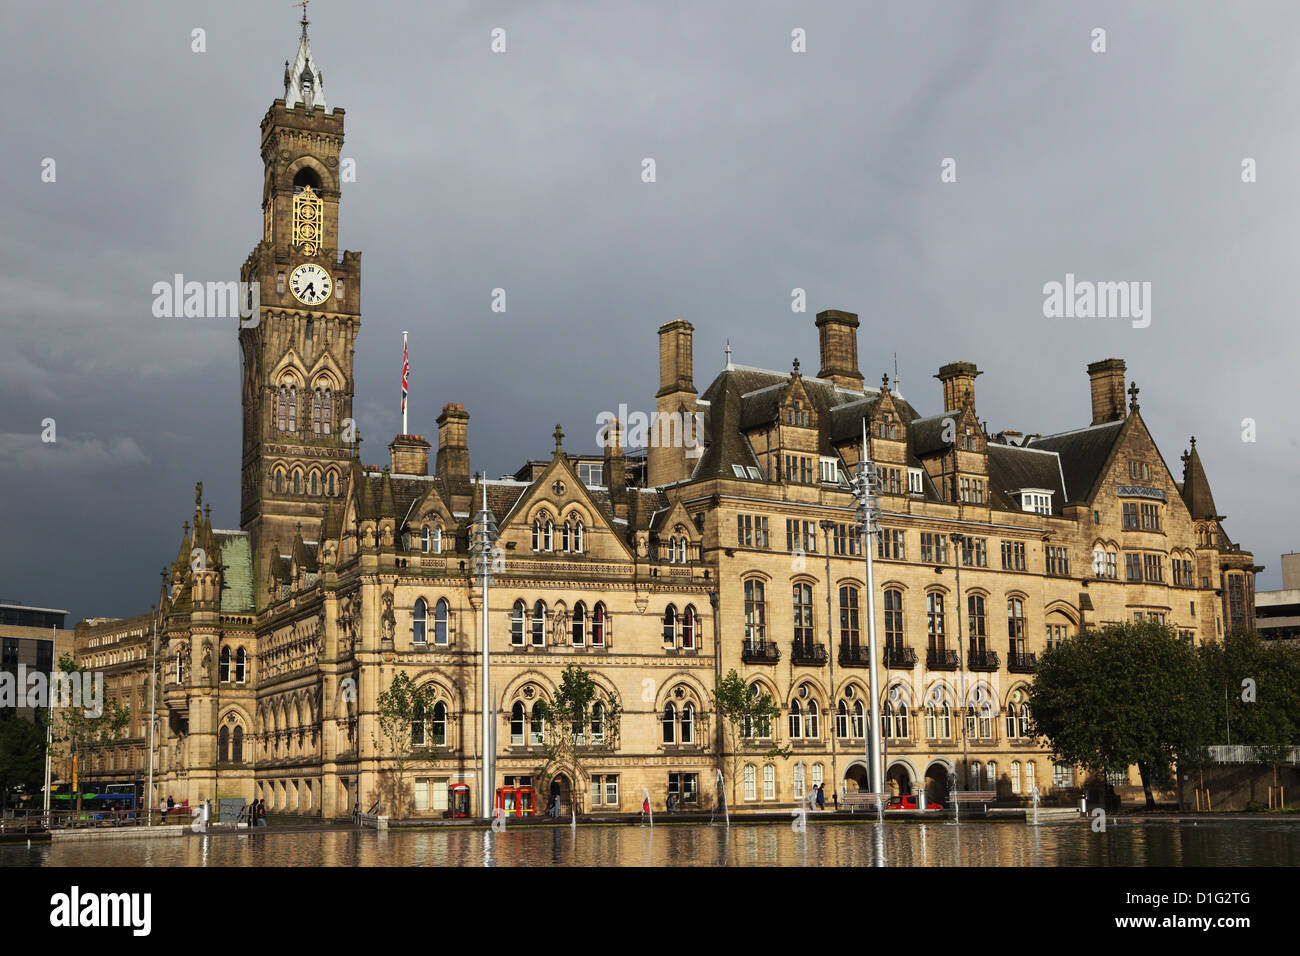 Bradford City Hall, a Venetian Gothic facade, on an overcast day, Bradford, West Yorkshire, Yorkshire, England, - Stock Image